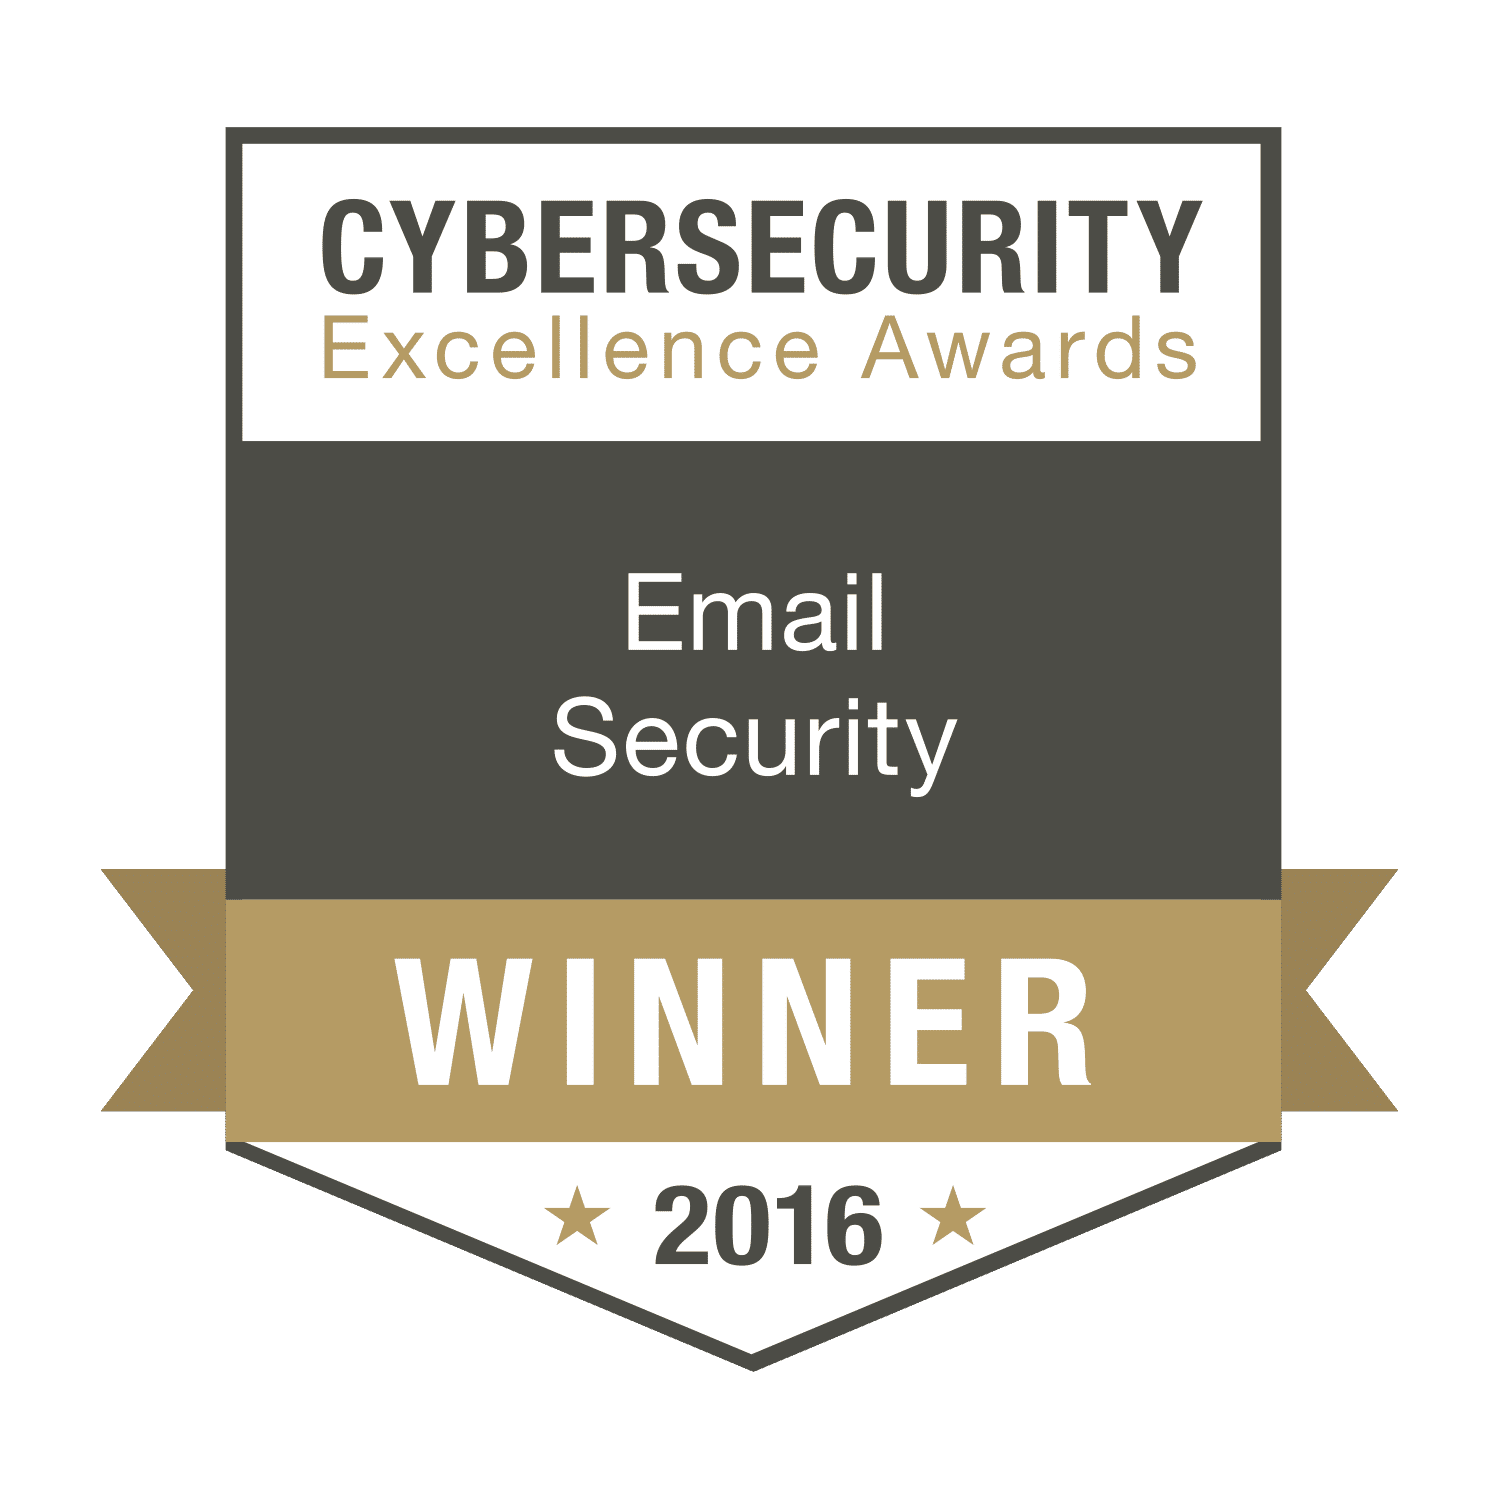 Email_Security_vector